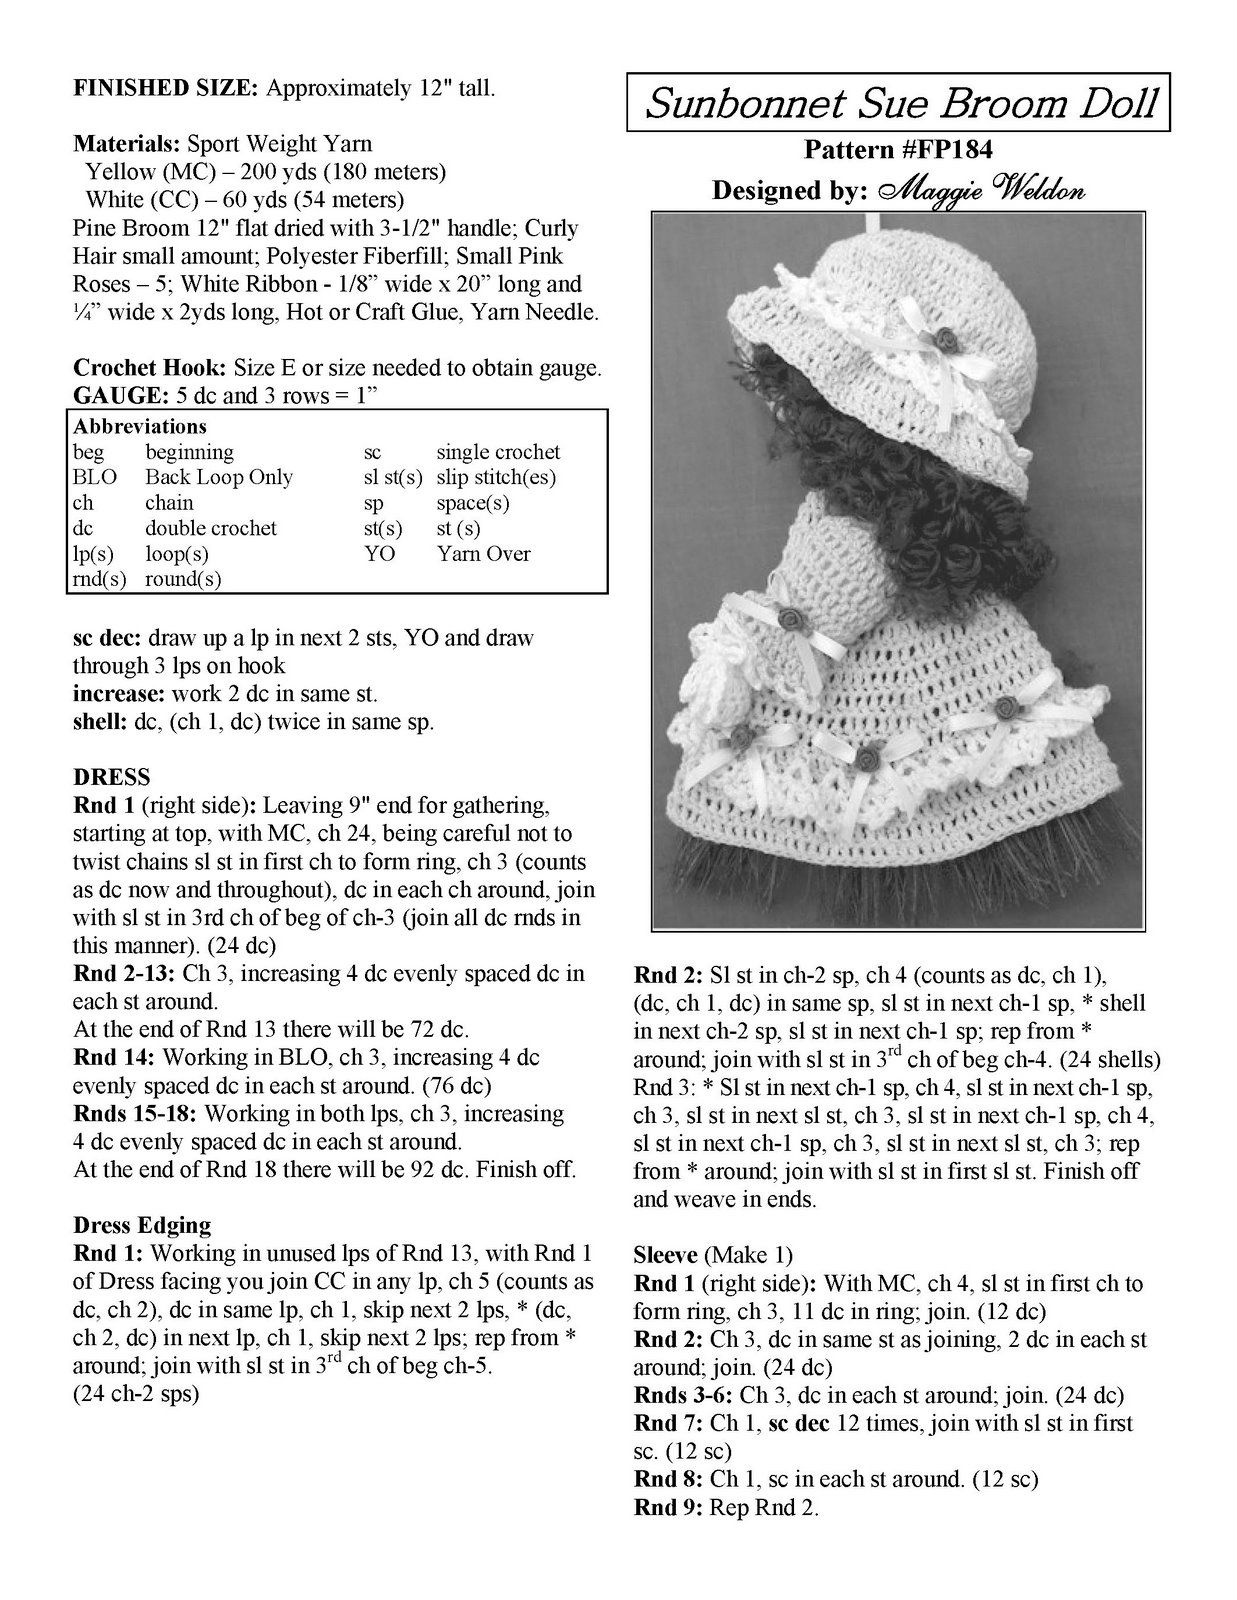 Free-Pattern-Maggie-Weldon-Crochet-Sunbonnet-Sue-Broom-Doll-FP184 ...